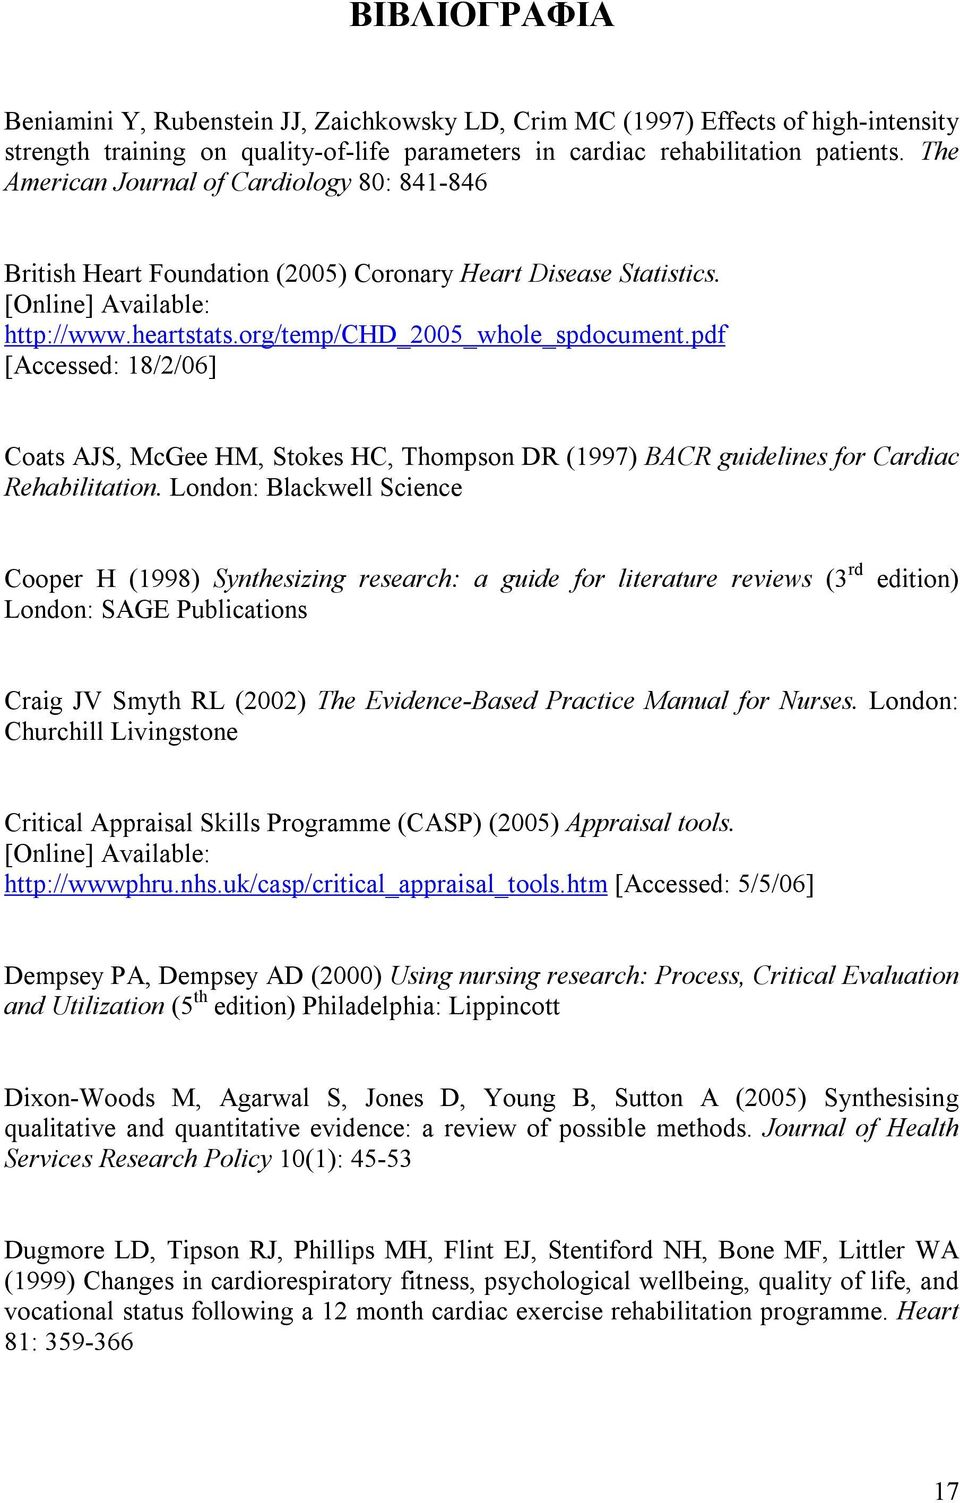 pdf [Accessed: 18/2/06] Coats AJS, McGee HM, Stokes HC, Thompson DR (1997) BACR guidelines for Cardiac Rehabilitation.